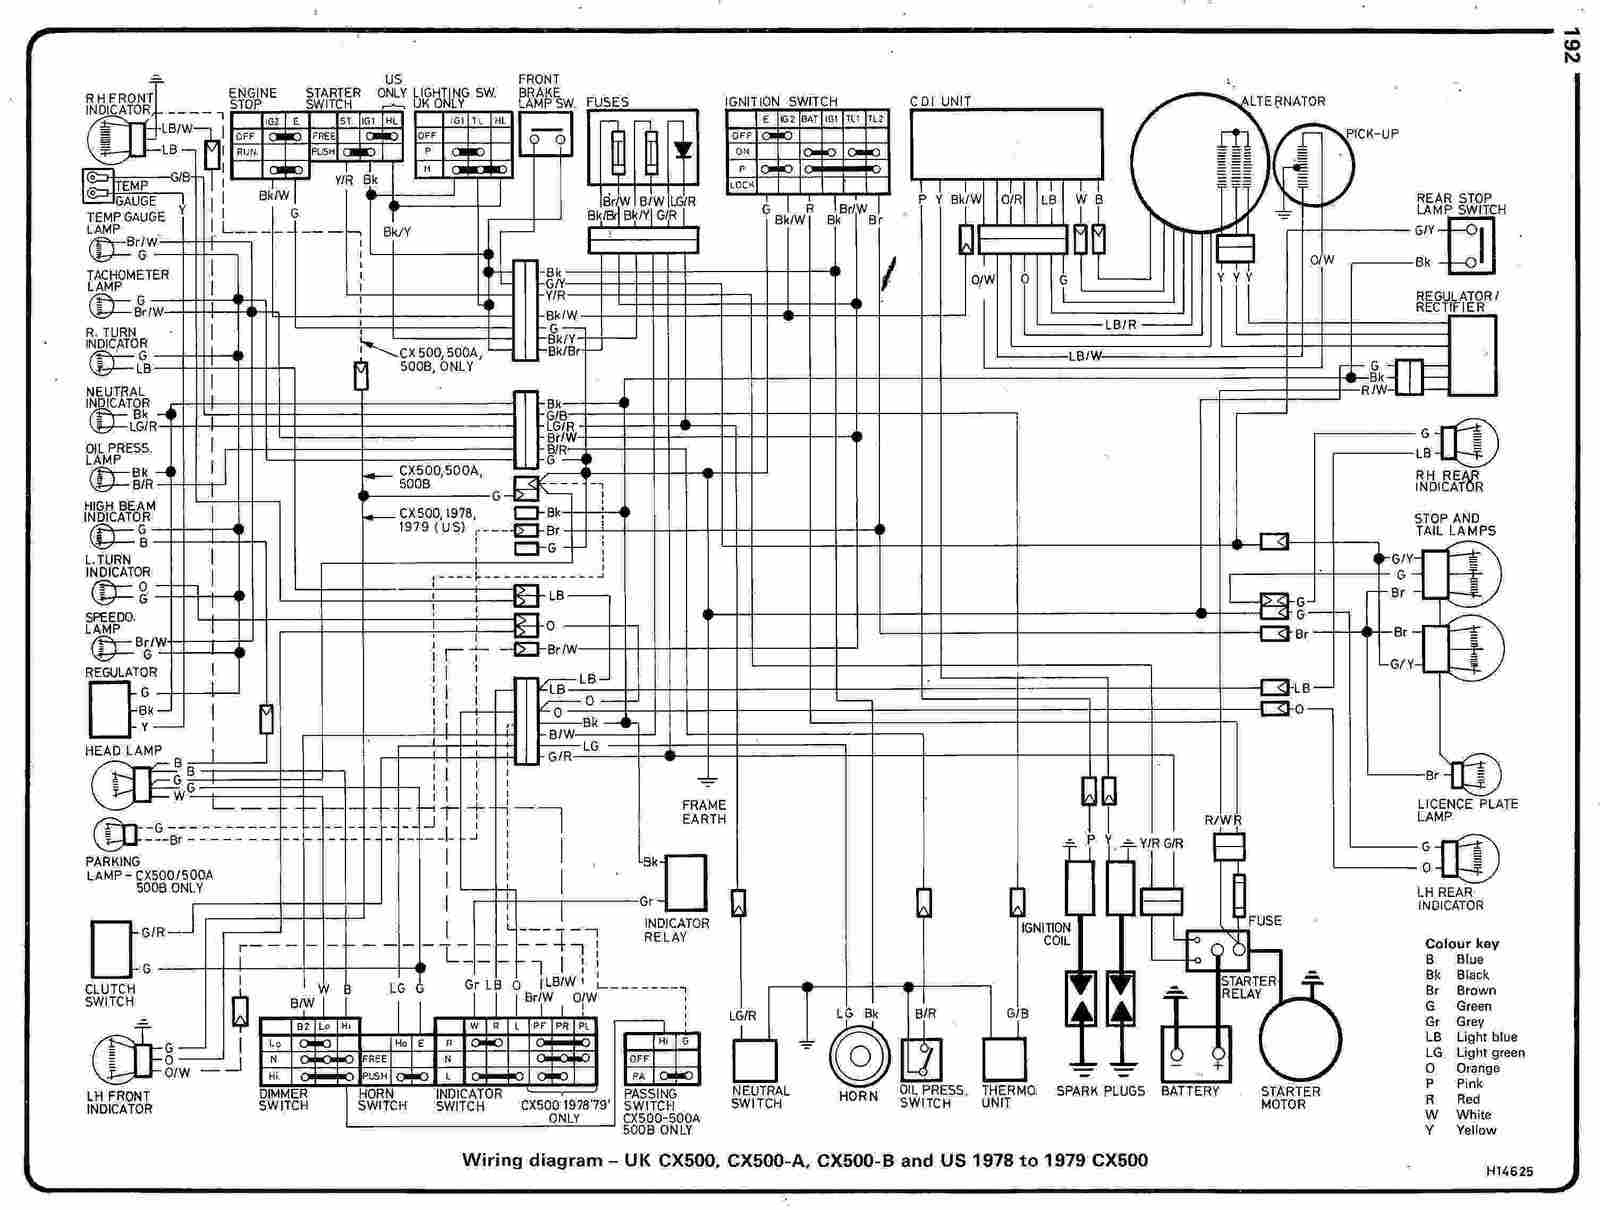 honda cx500 cx500 a cx500 b uk and cx500 us 1978 79 honda cx500 cx500 a cx500 b uk and cx500 us 1978 79 electrical wiring diagram